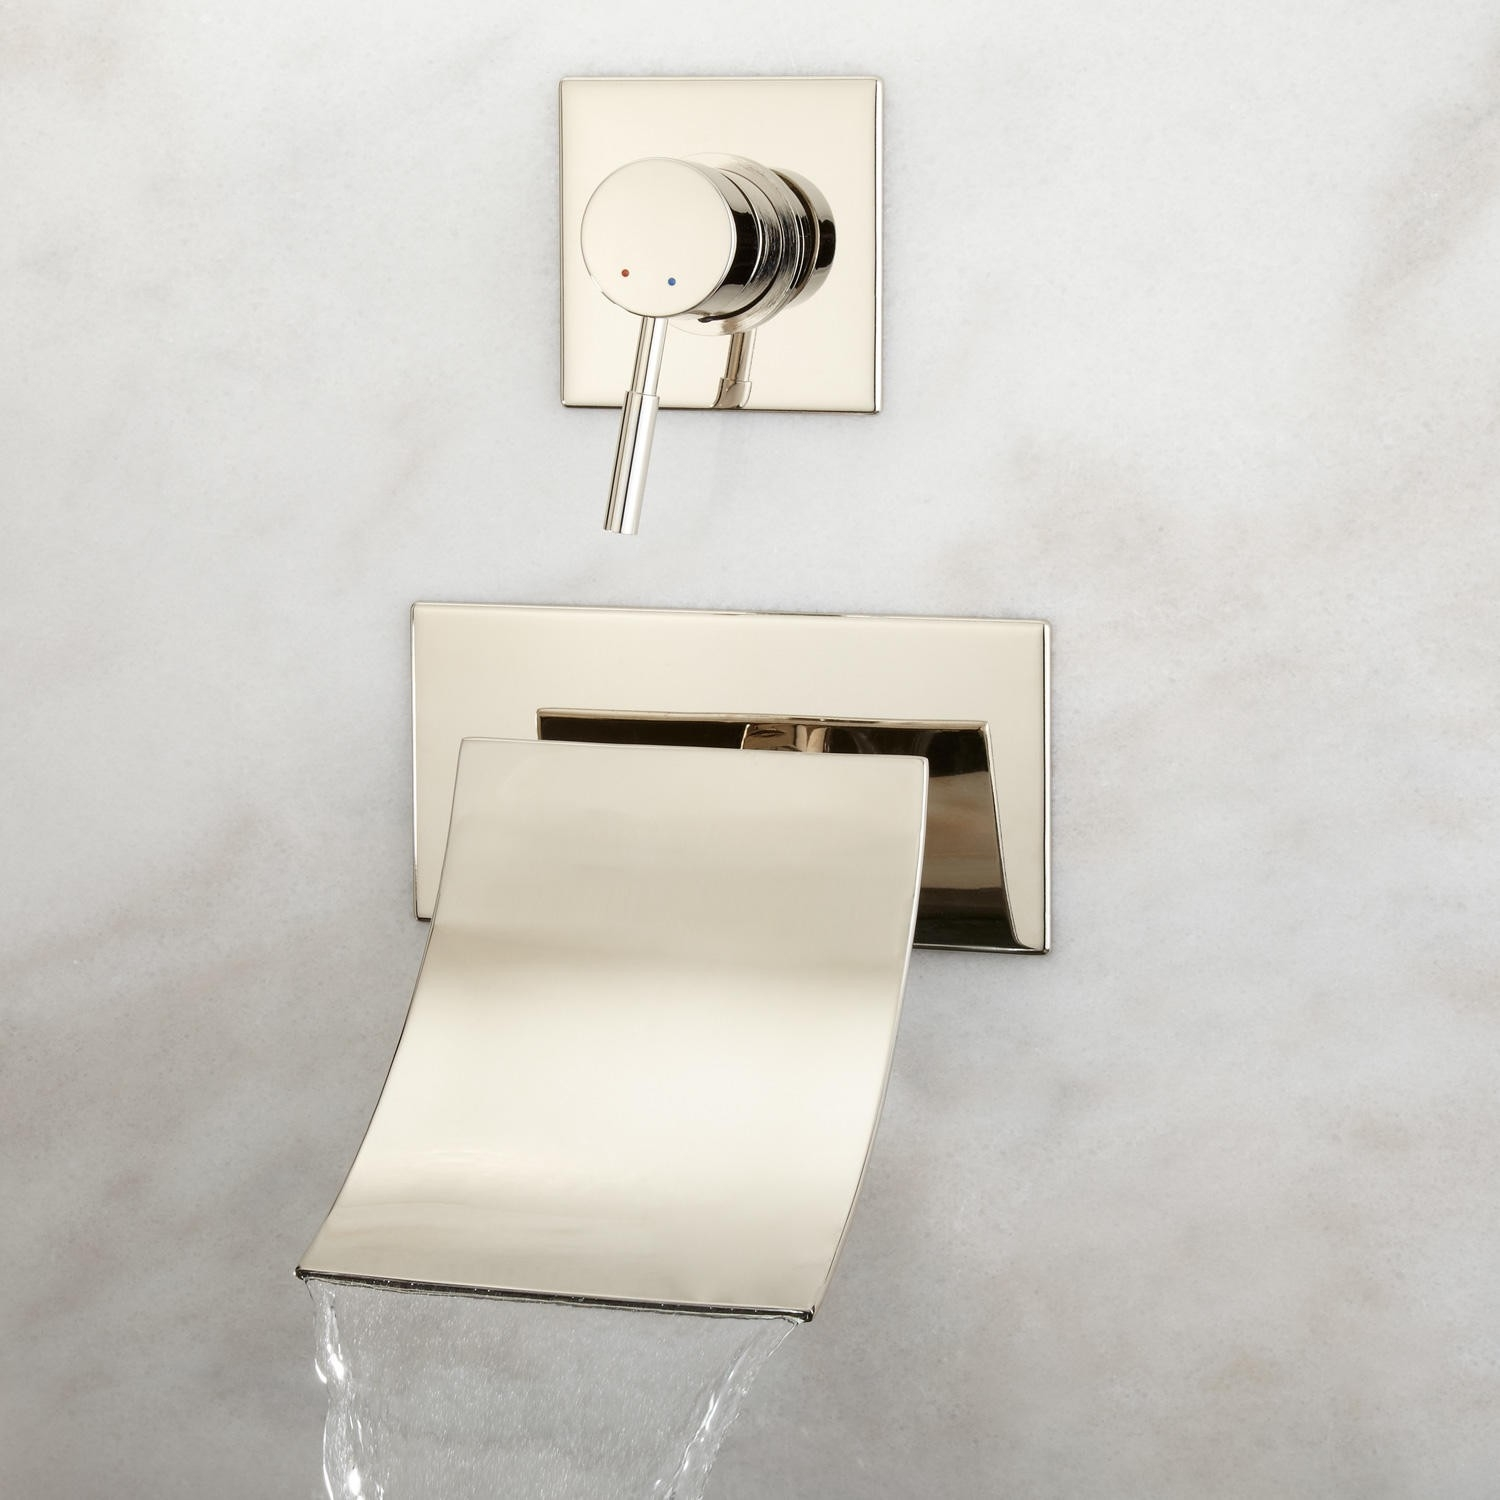 waterfall bathroom faucet hand shower waterfall bathroom faucet with regard to dimensions 1500 x 1500